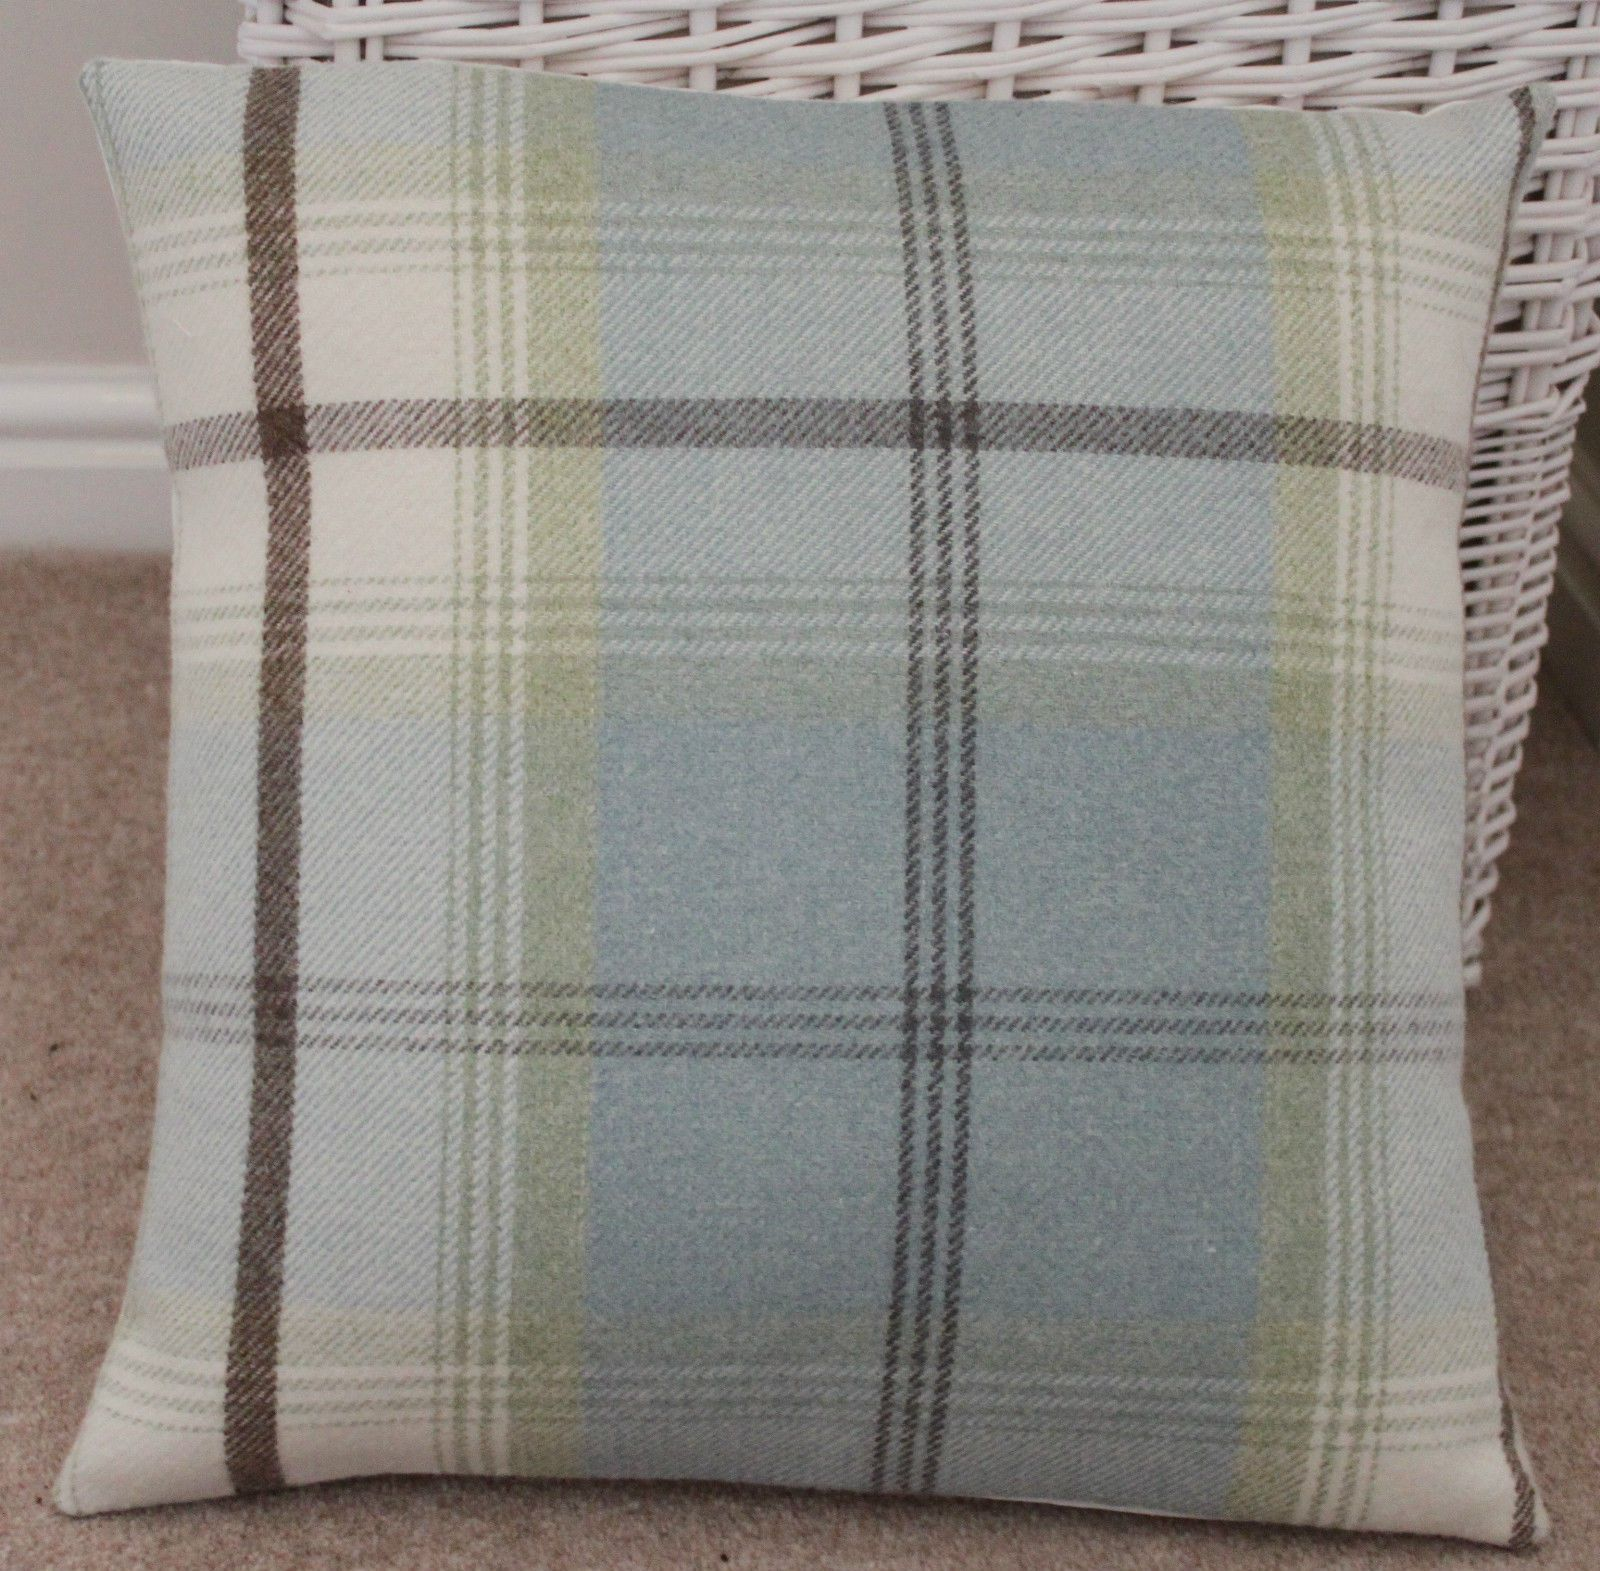 Make a statement with this cozy cushion for an instant update and add a fashionable splash of color to your home. Made with Porter & Stone Fabric from the Balmoral Tartan Collection and backed with a contrasting quality cream cotton fabric.   eBay!